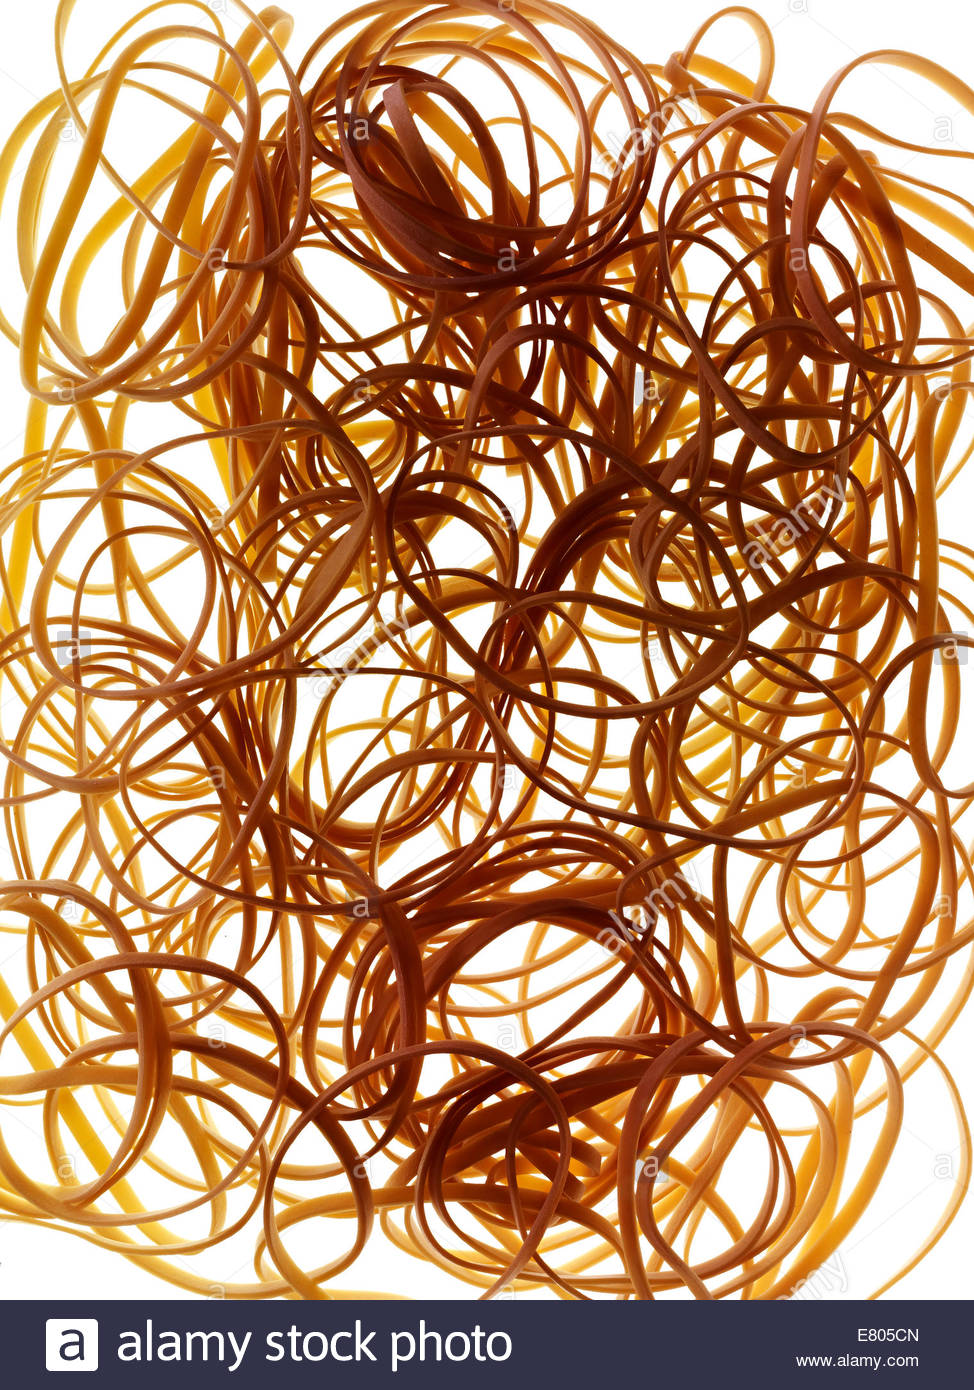 Studio shot of a bed of Rubber bands on white background - Stock Image